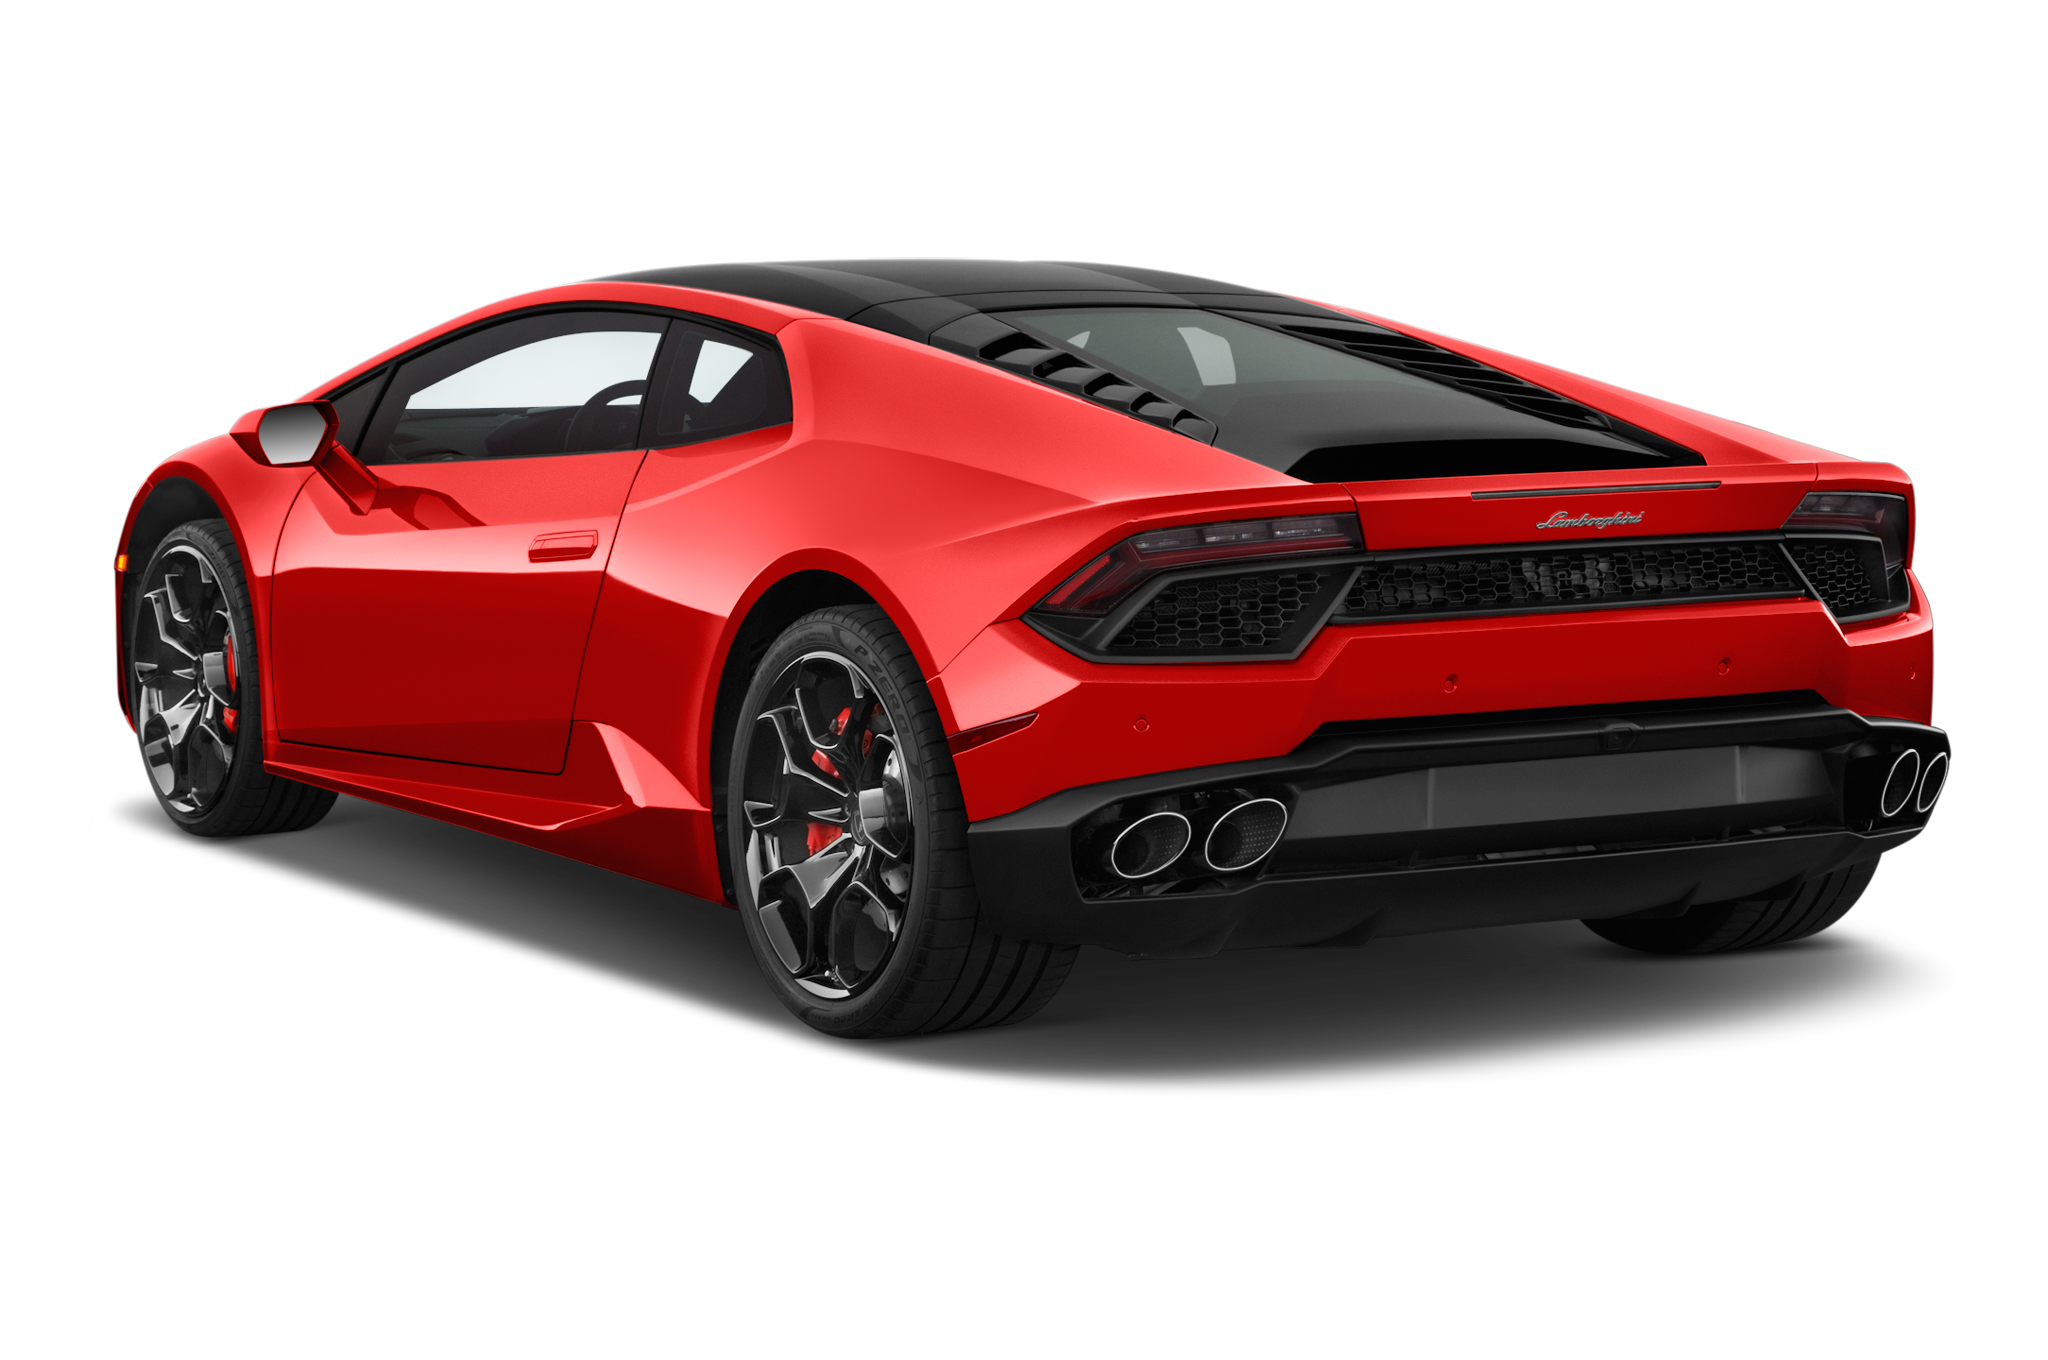 Prototype Drawing Car Lamborghini Transparent Png Clipart Free